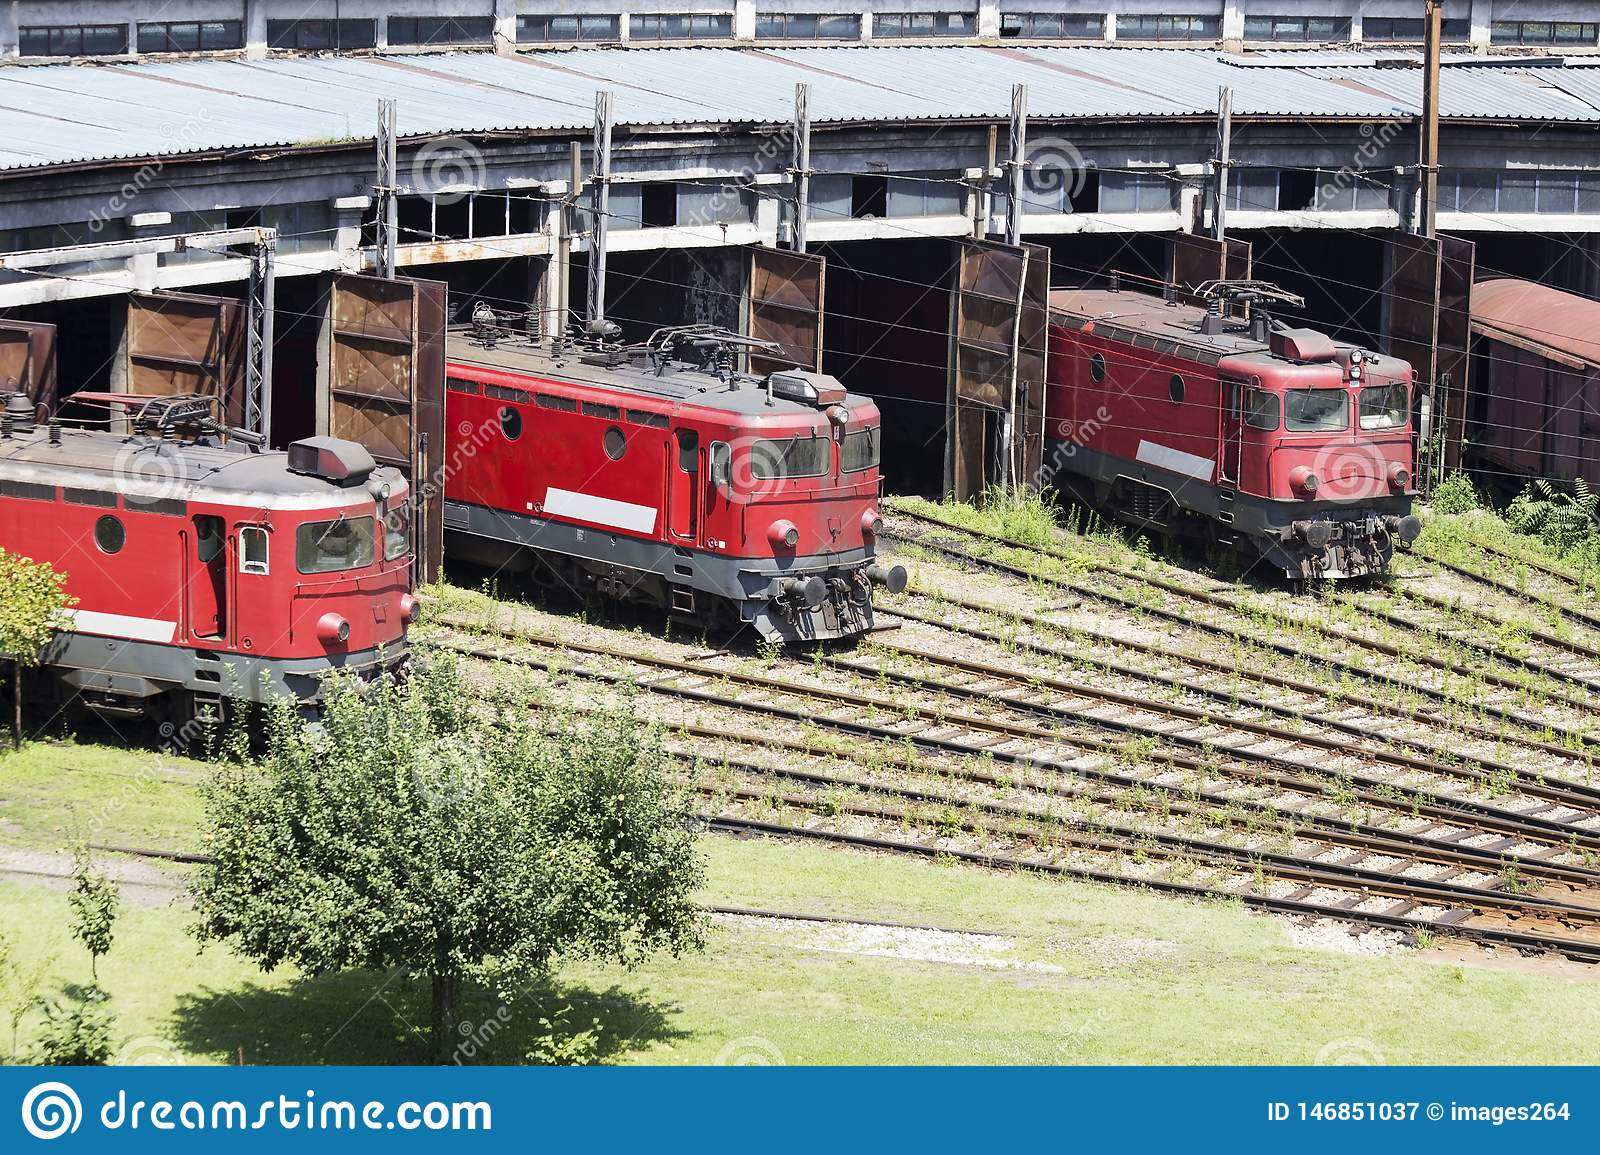 The red locomotives